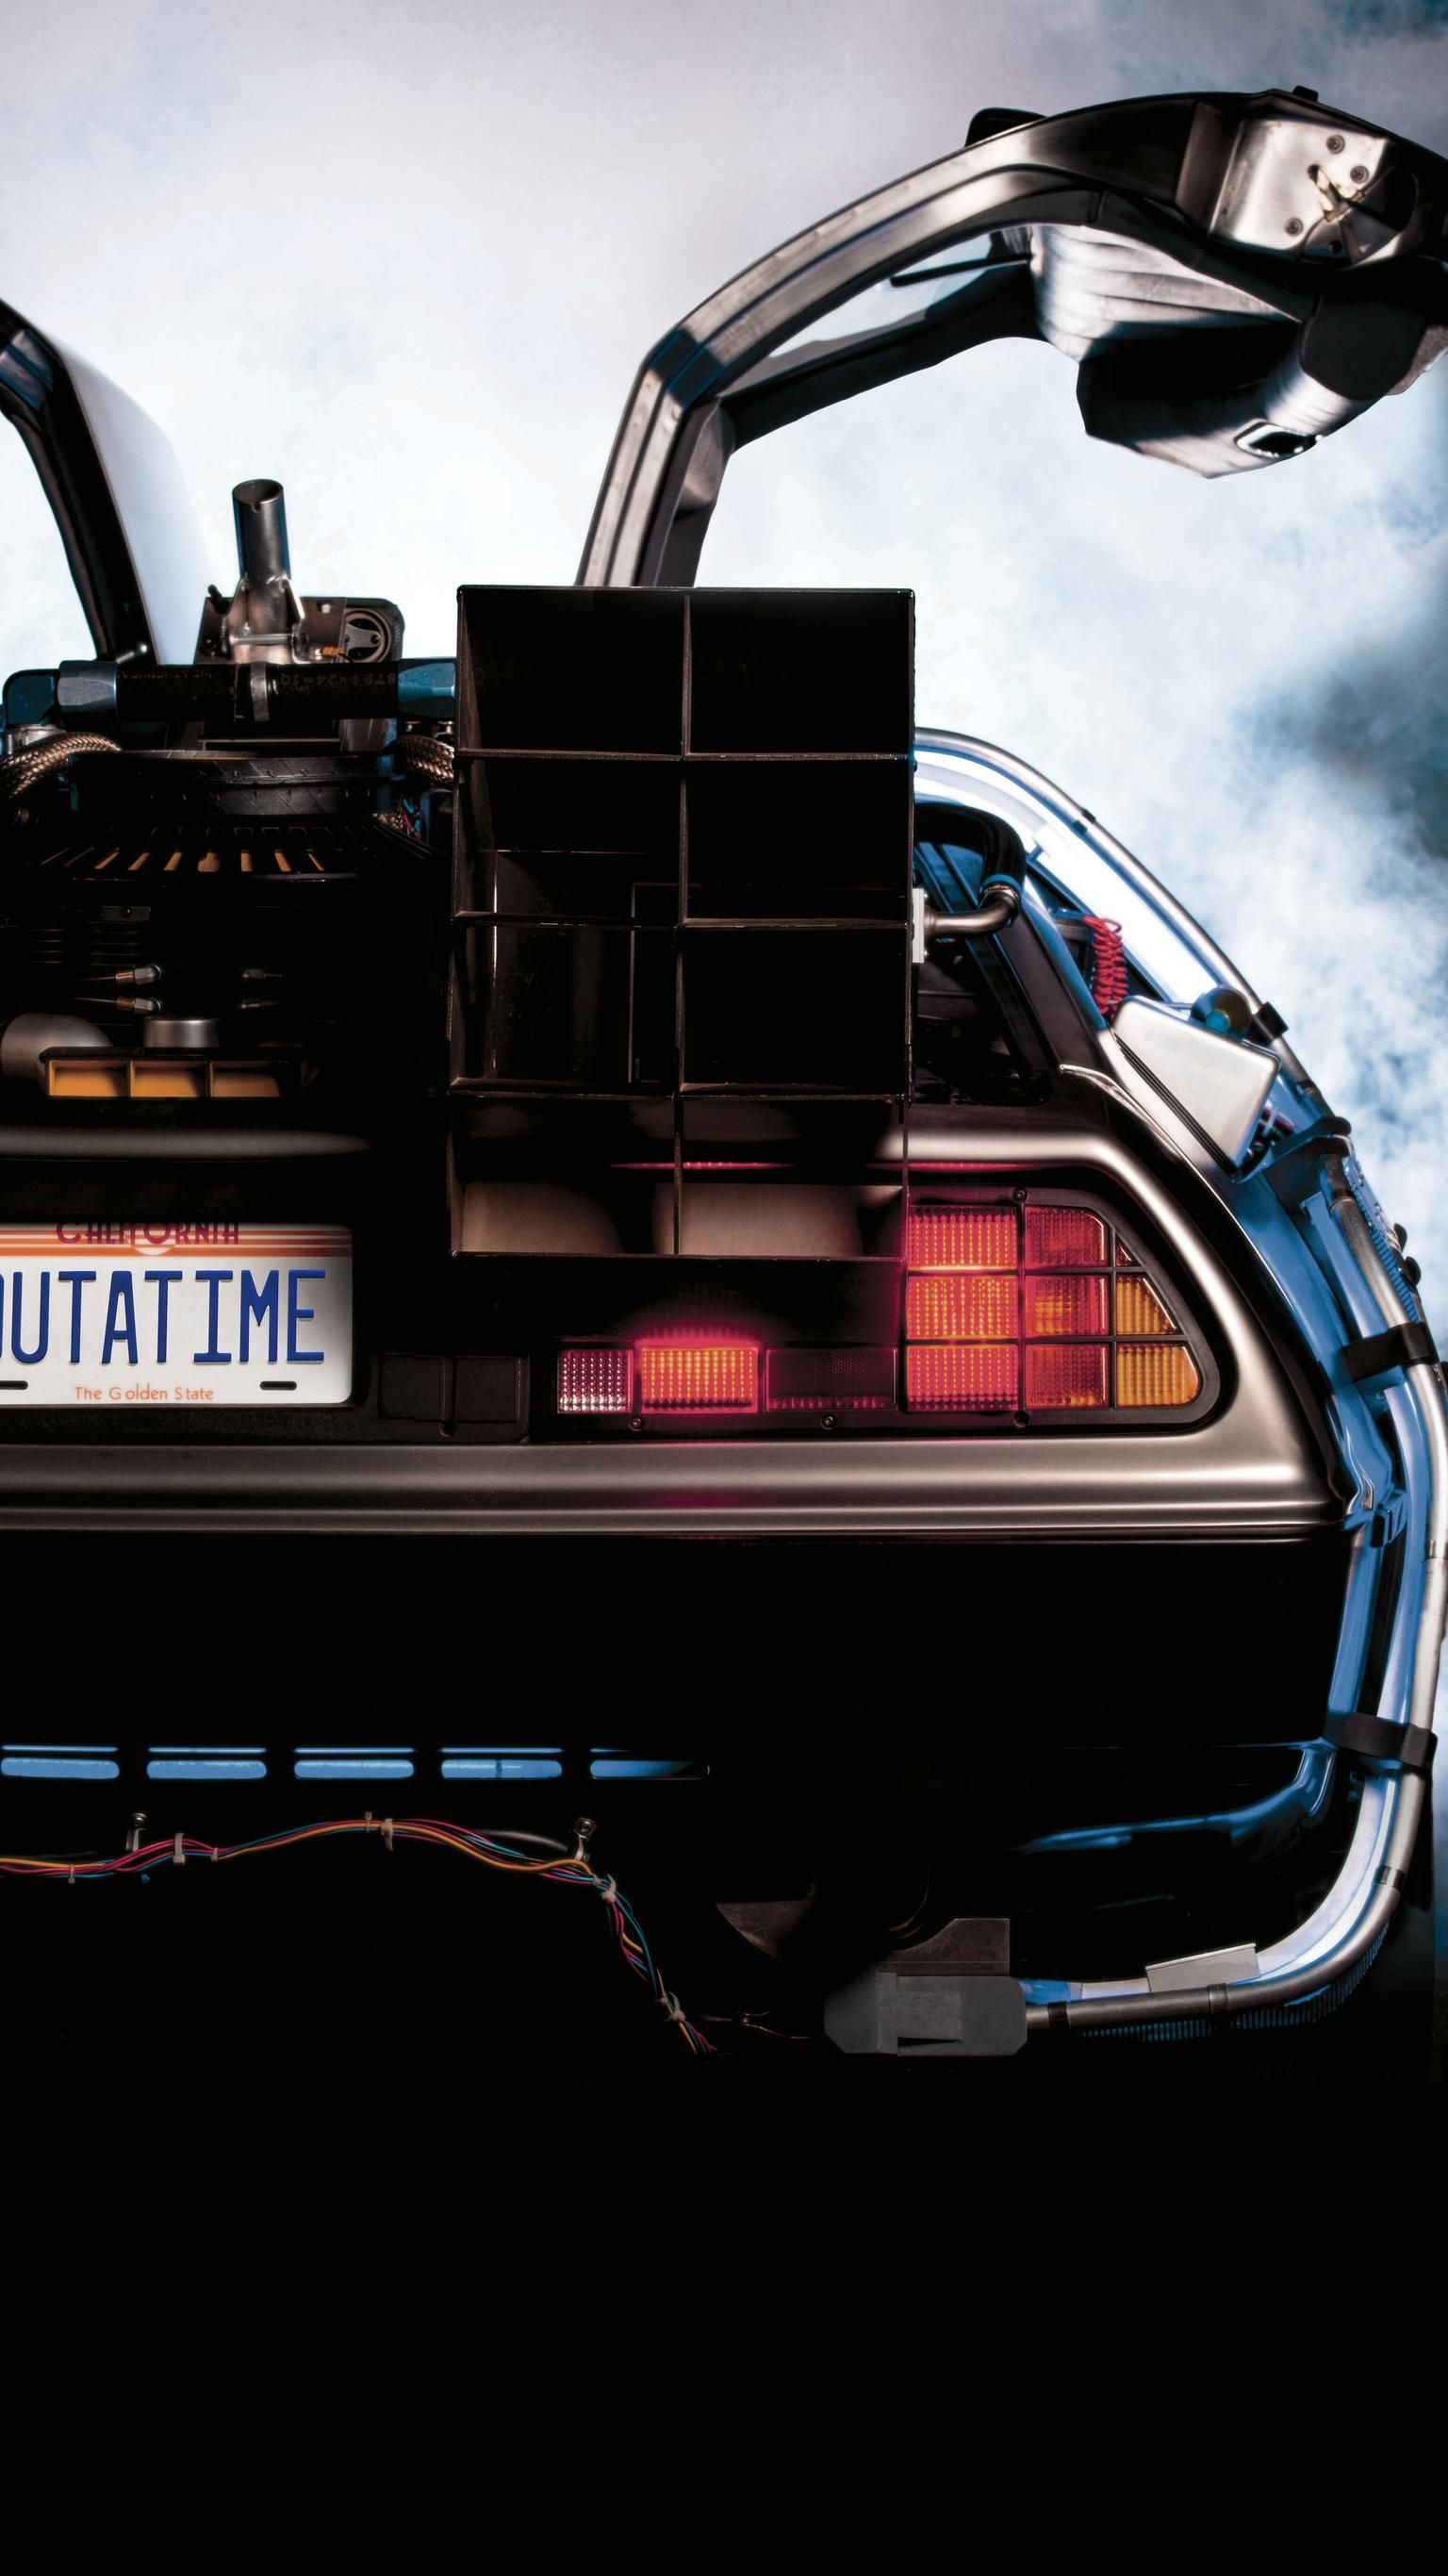 Back To The Future 1985 Phone Wallpaper In 2020 Future